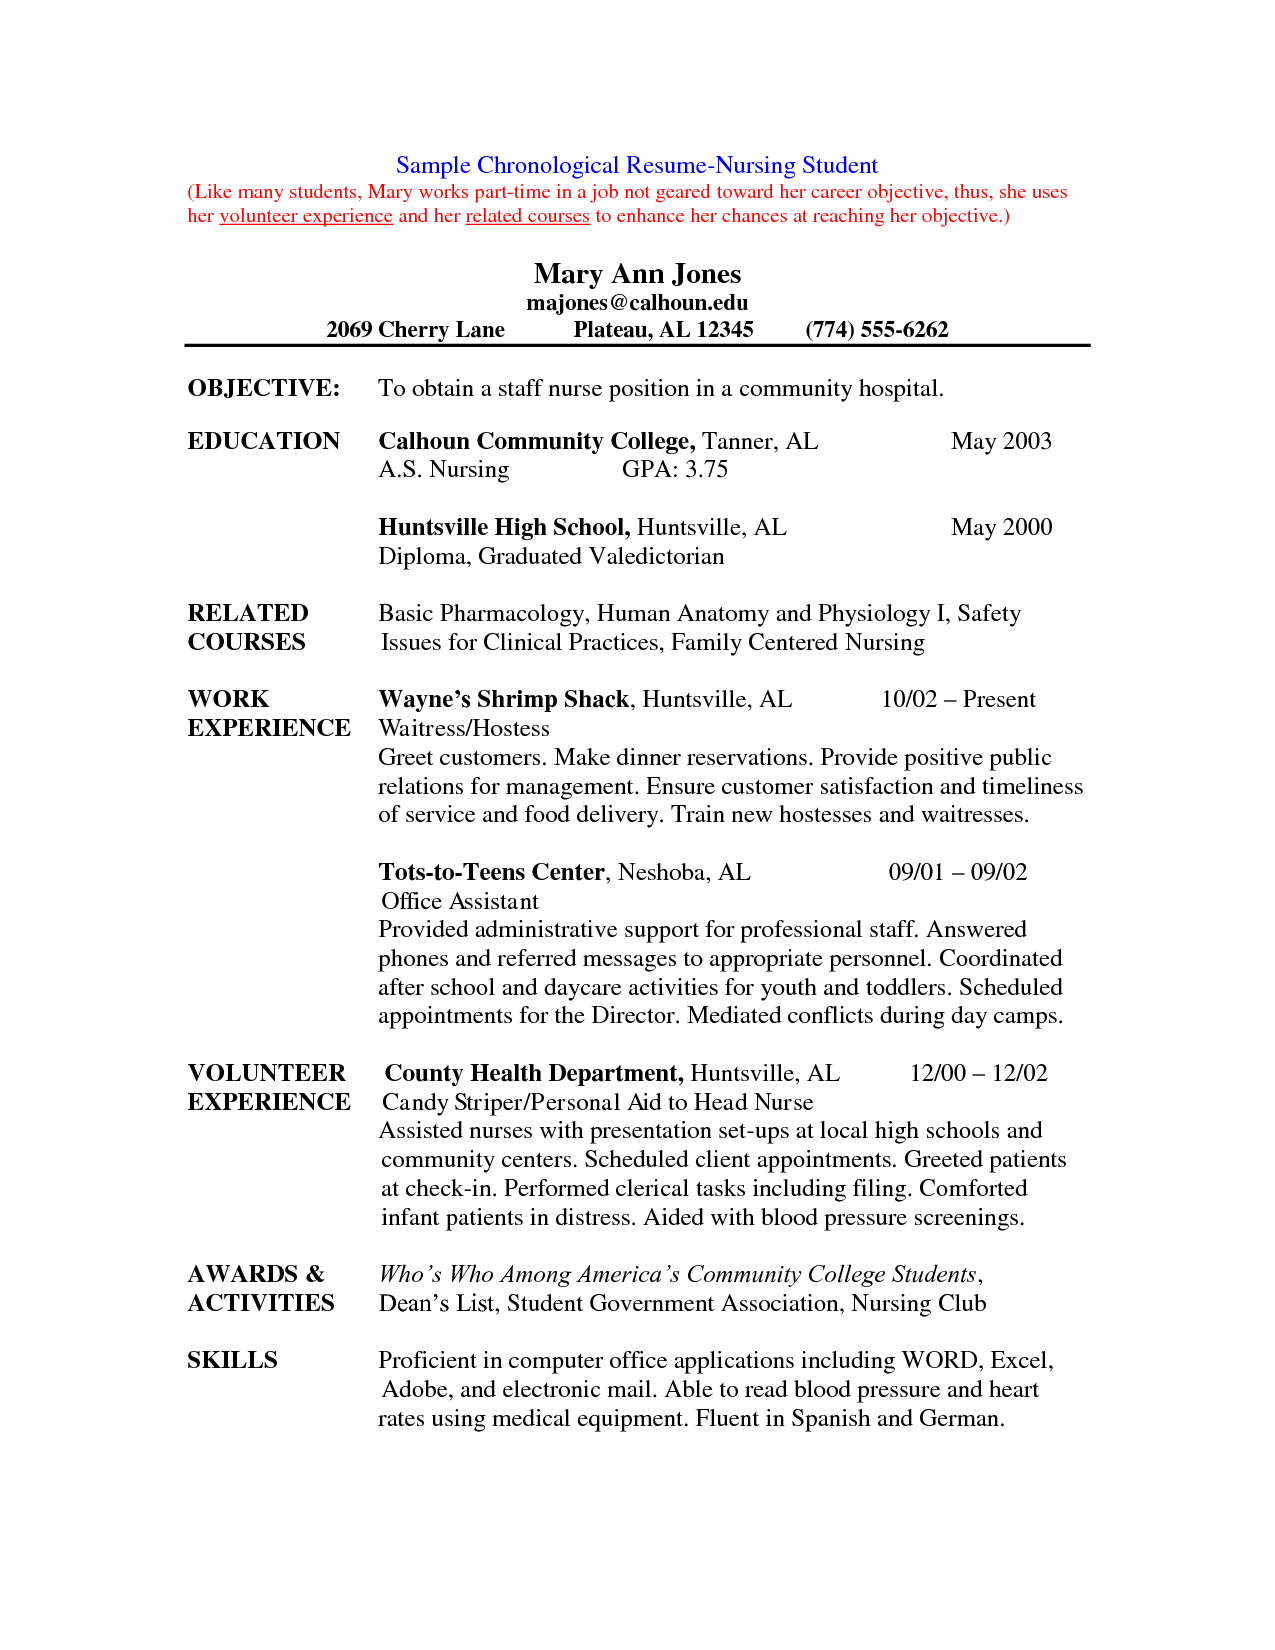 Nursing Student Resume Template HDResume Templates Cover Letter Examples  Example College Student Resume